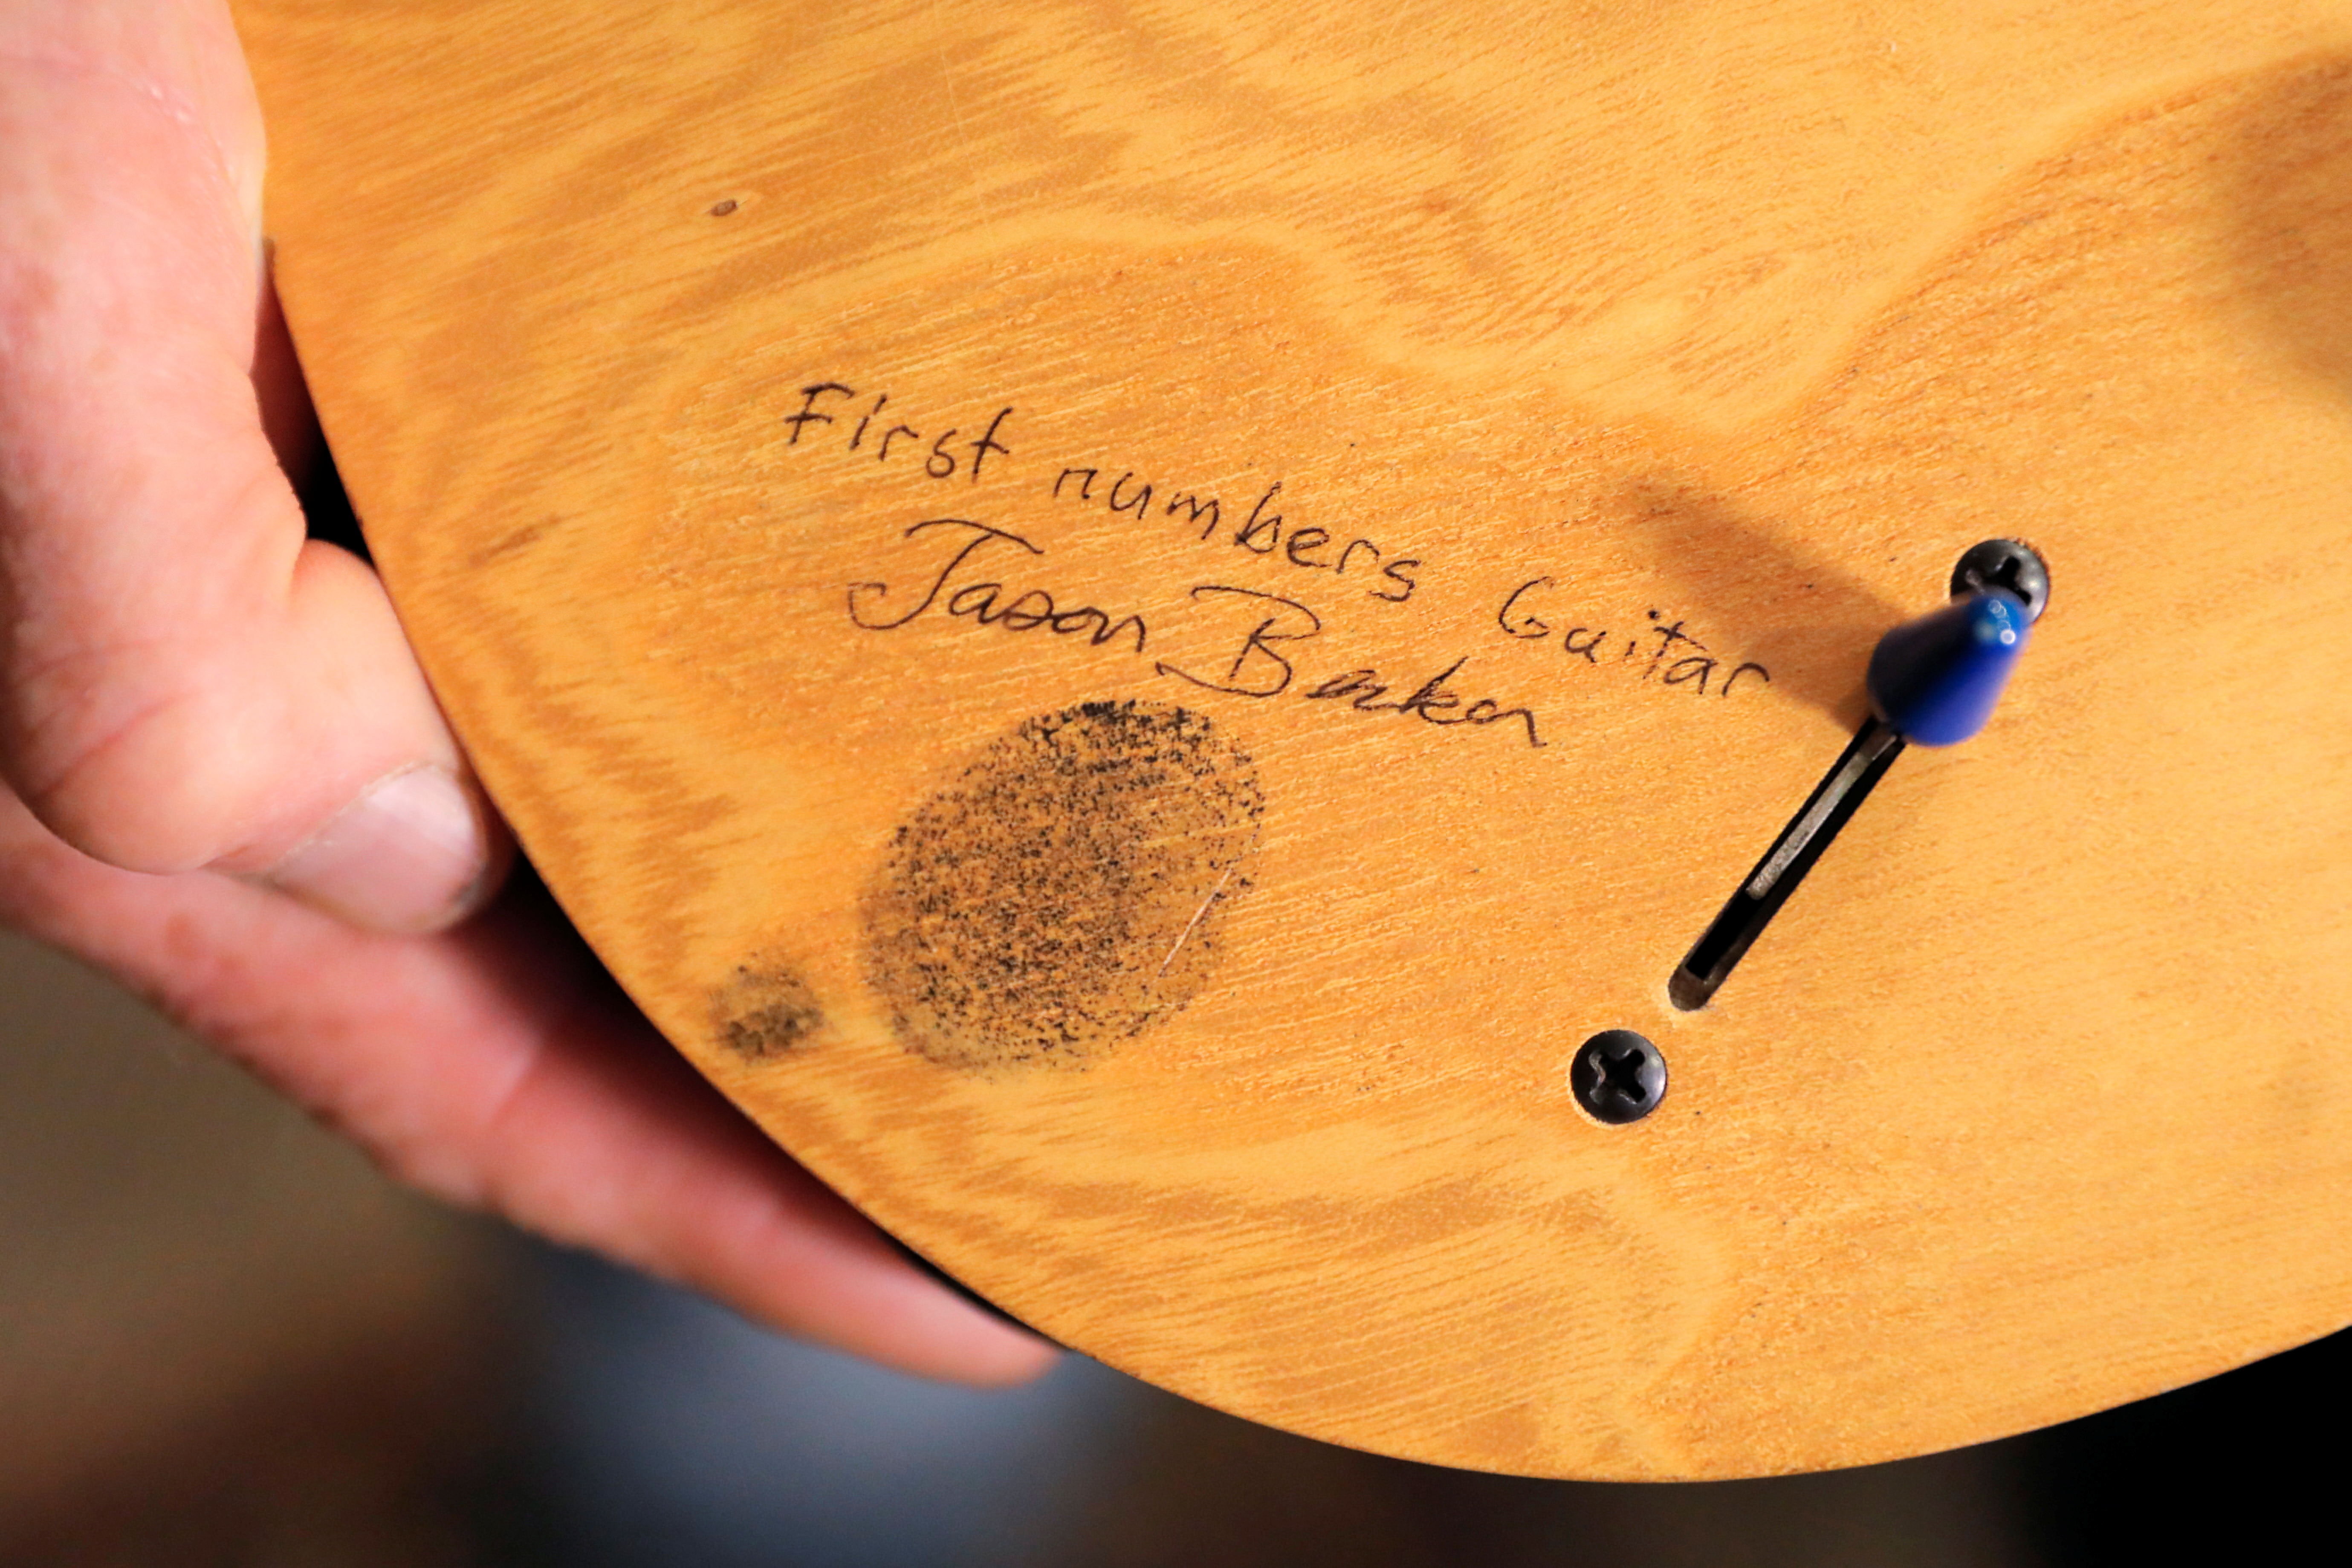 The thumb print of guitar player Jason Becker is seen on his